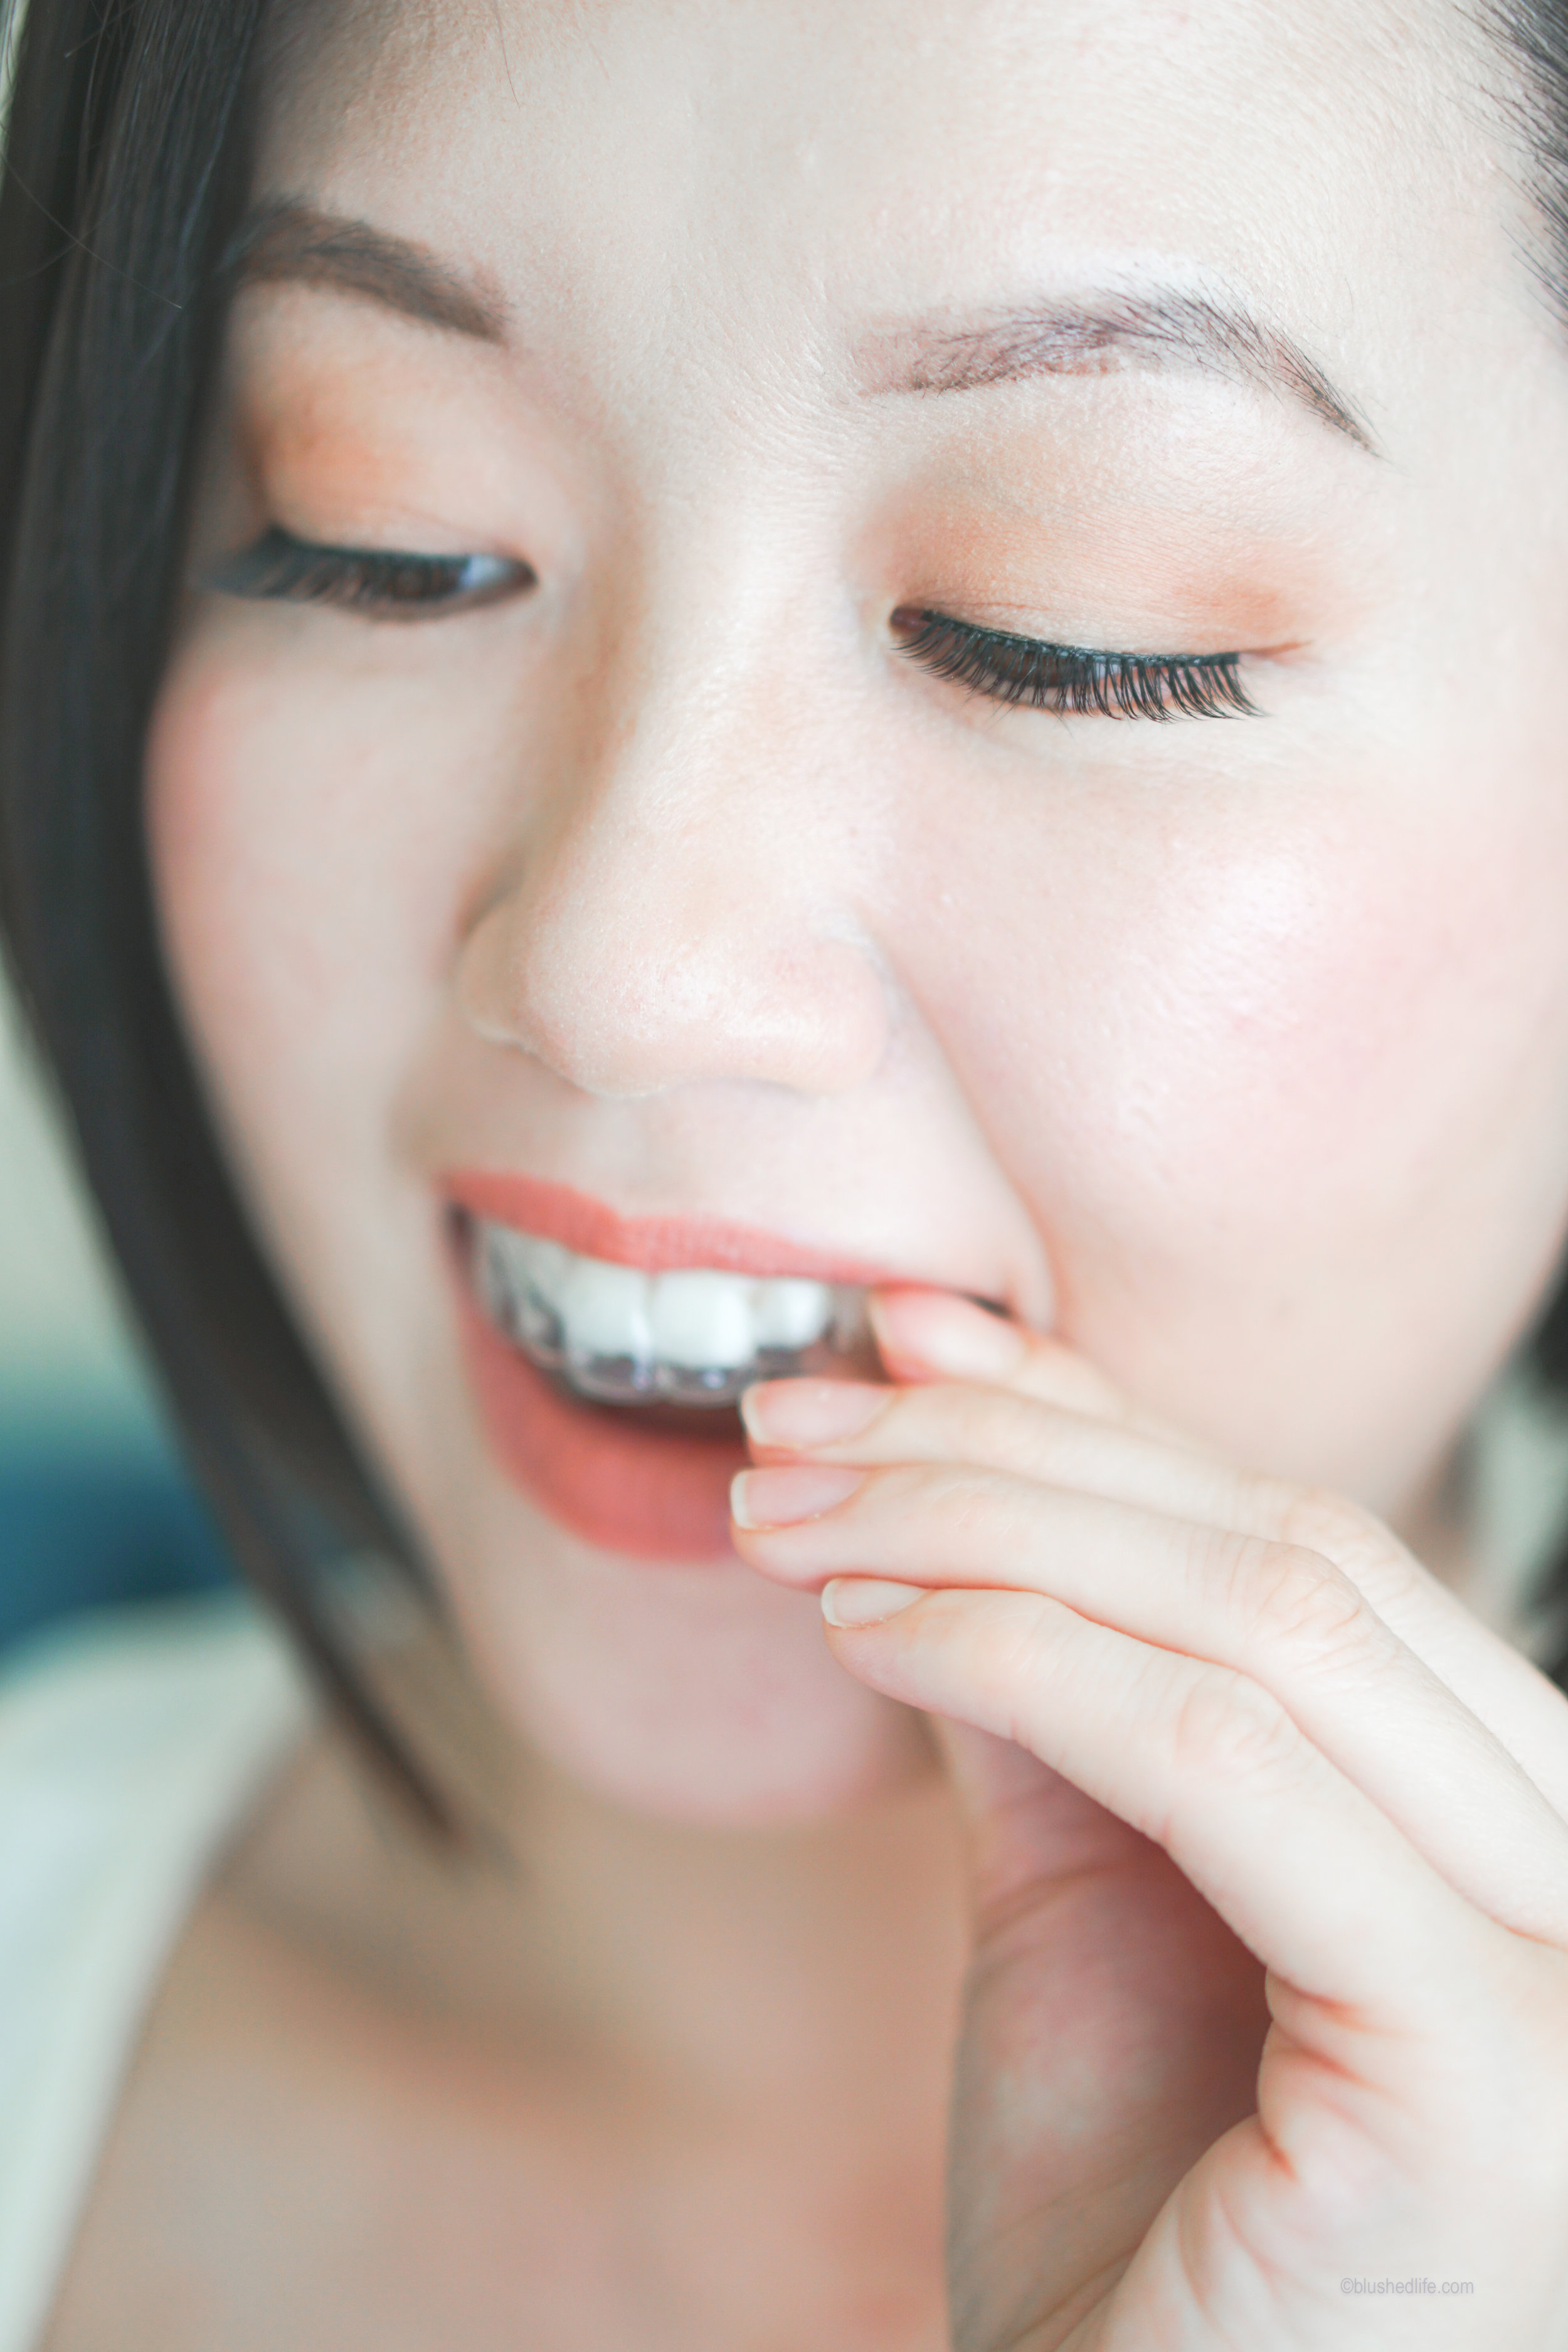 How To Whiten Sensitive Teeth At Home_Smile Brilliant Review_DSC09257-2.jpg